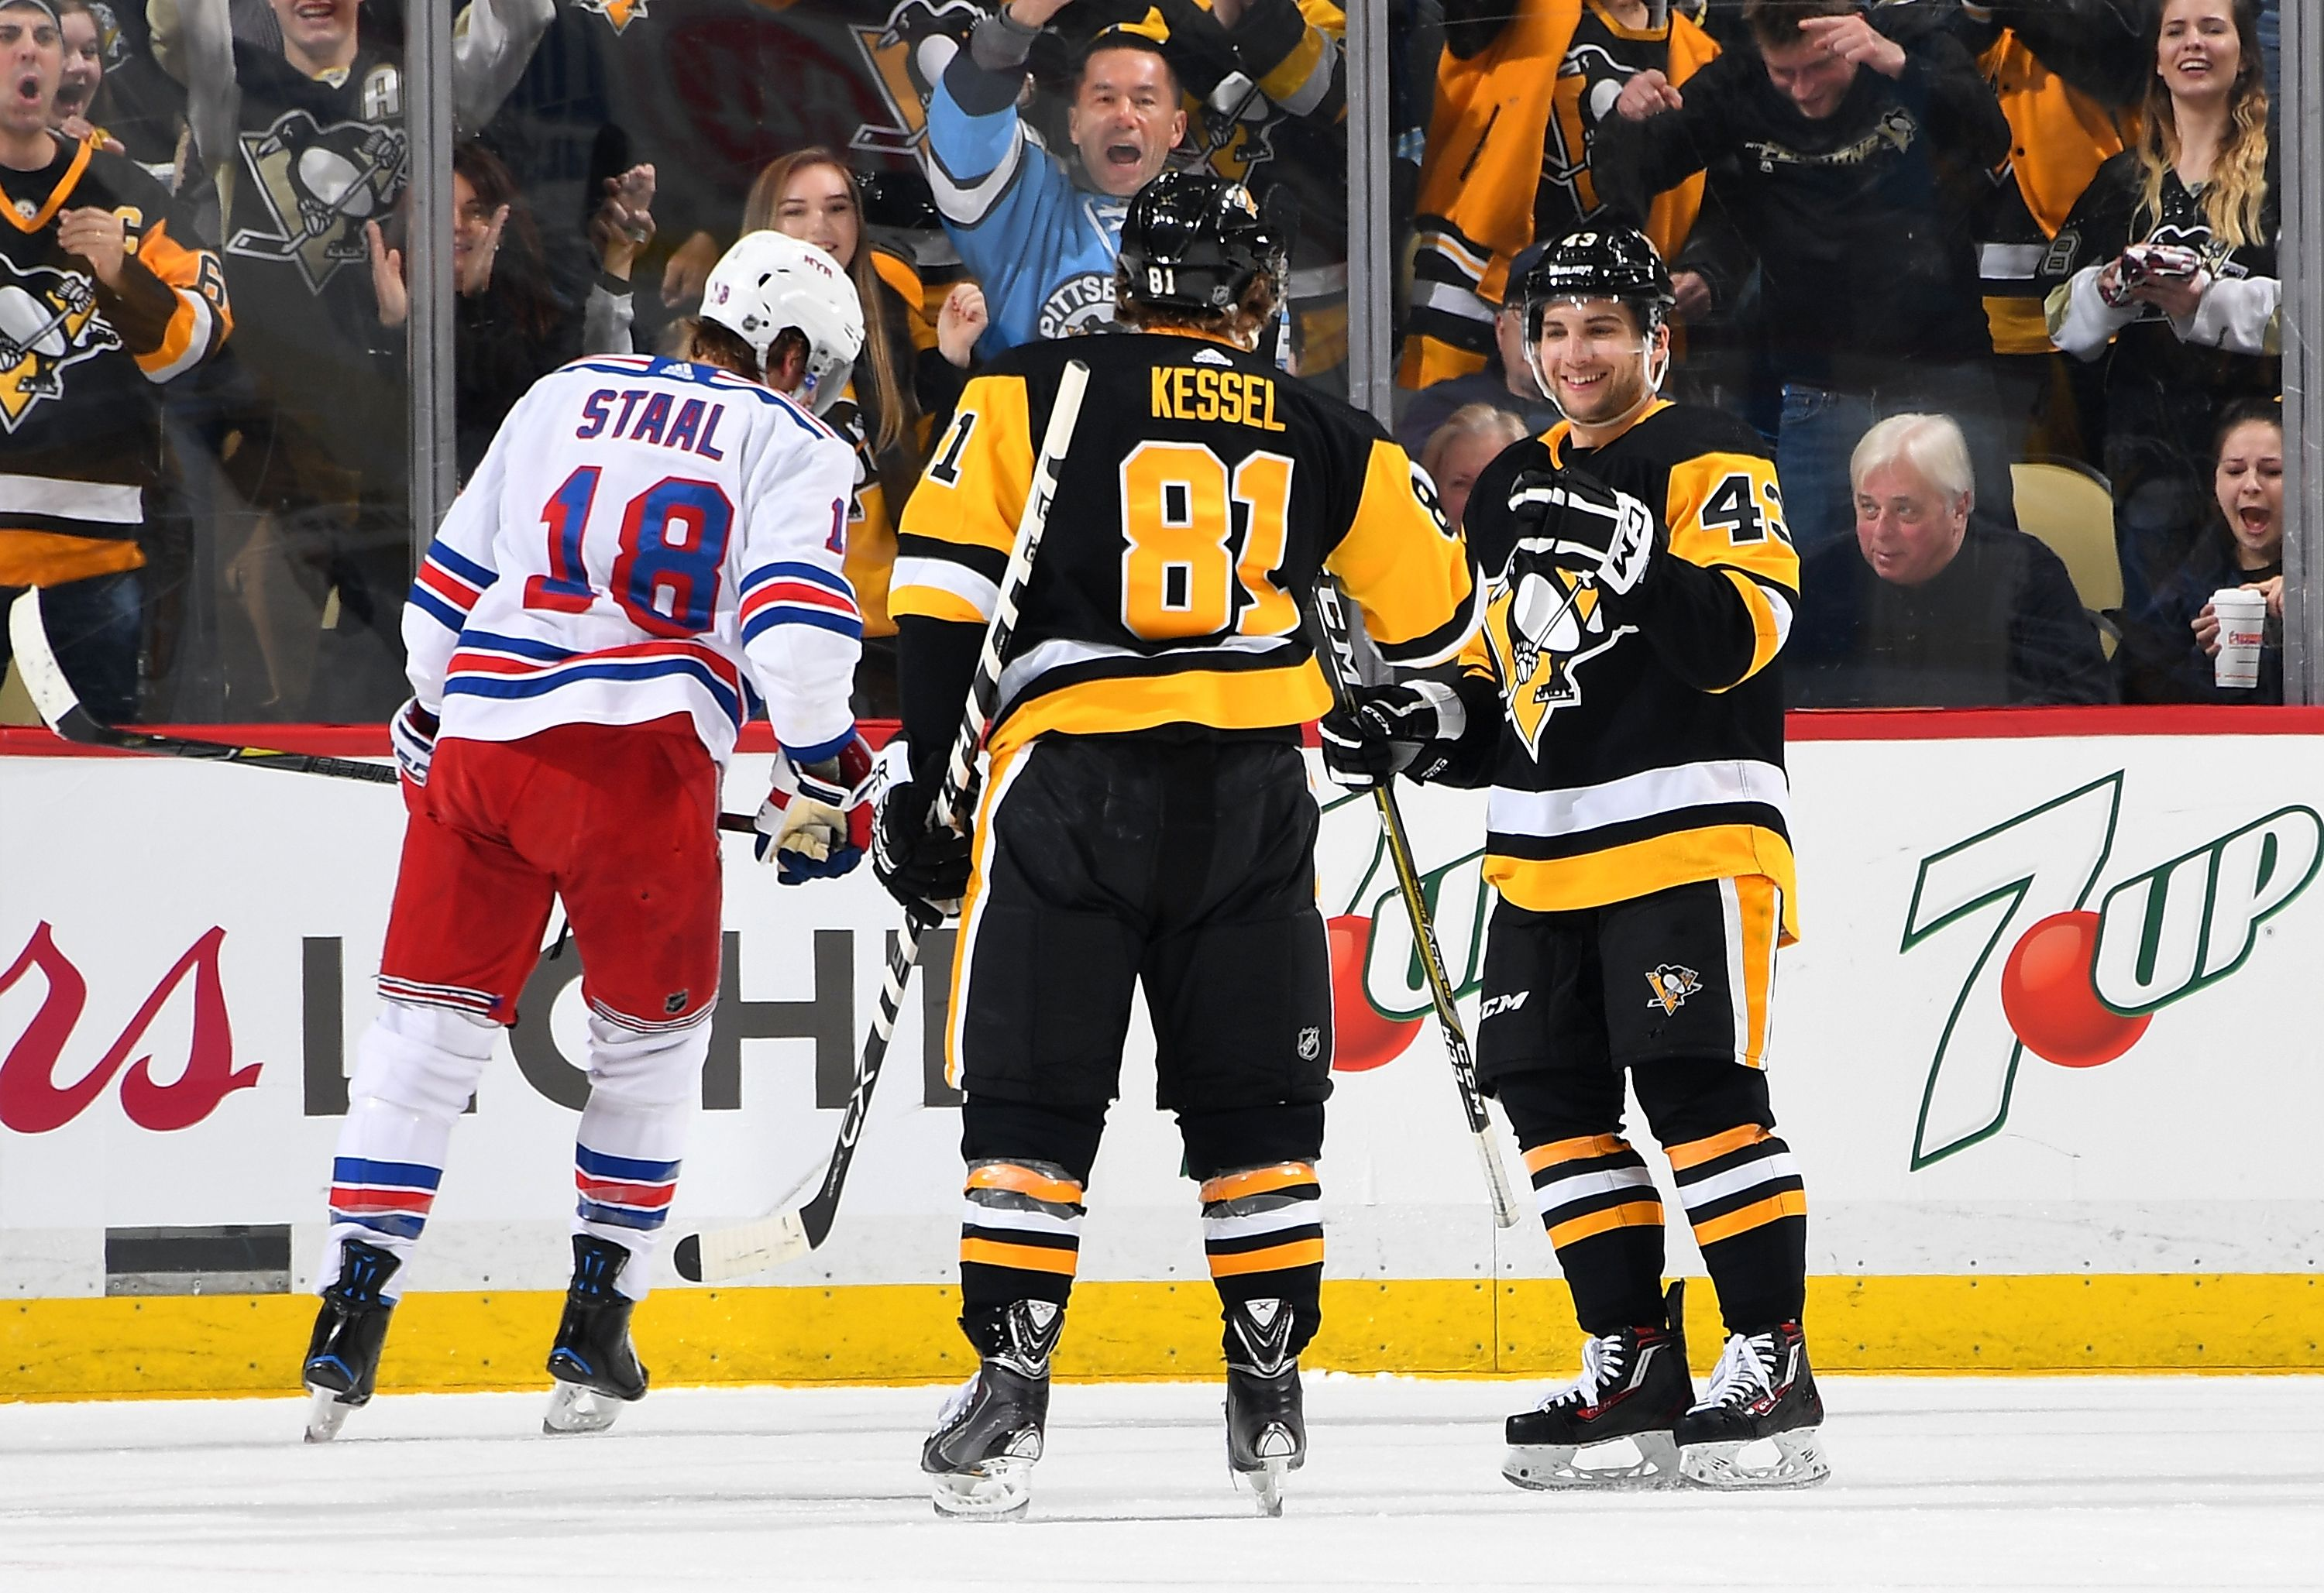 Officials separate Pittsburgh Penguins Arron Asham and New York Rangers Stu  Bickel in the second period